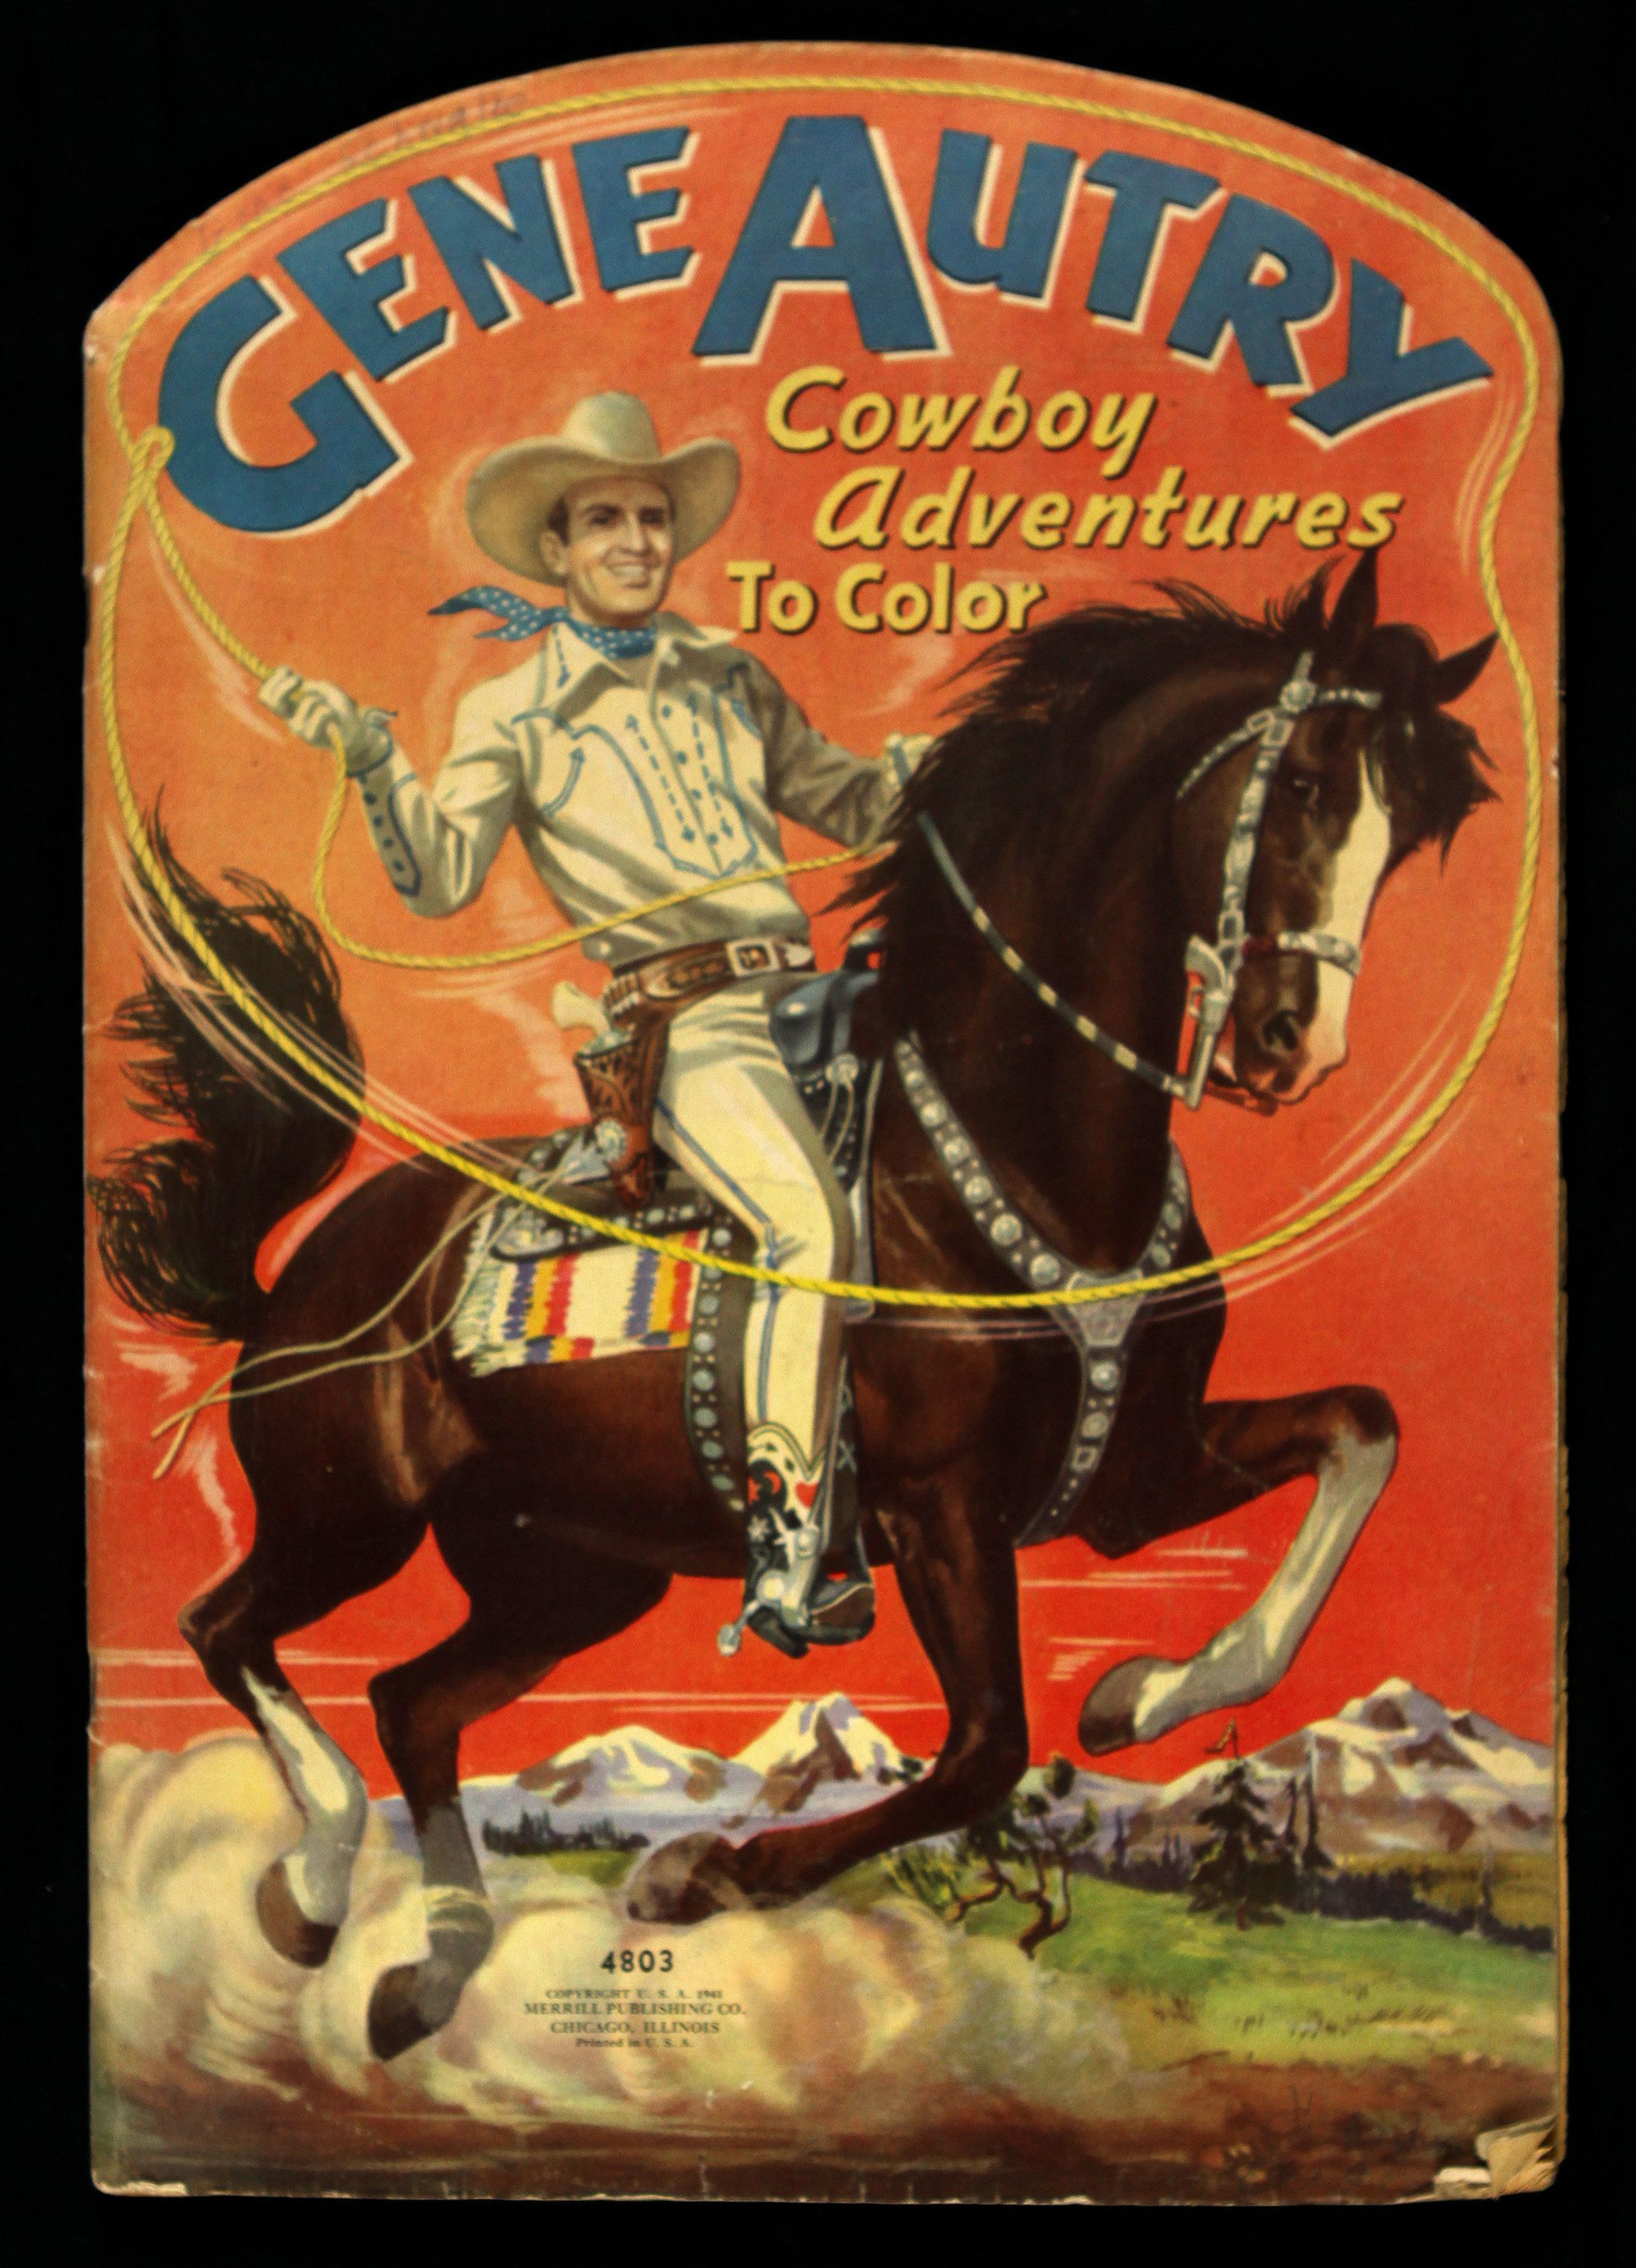 Offered is a Gene Autry Cowboy Adventures to Color oversized ...